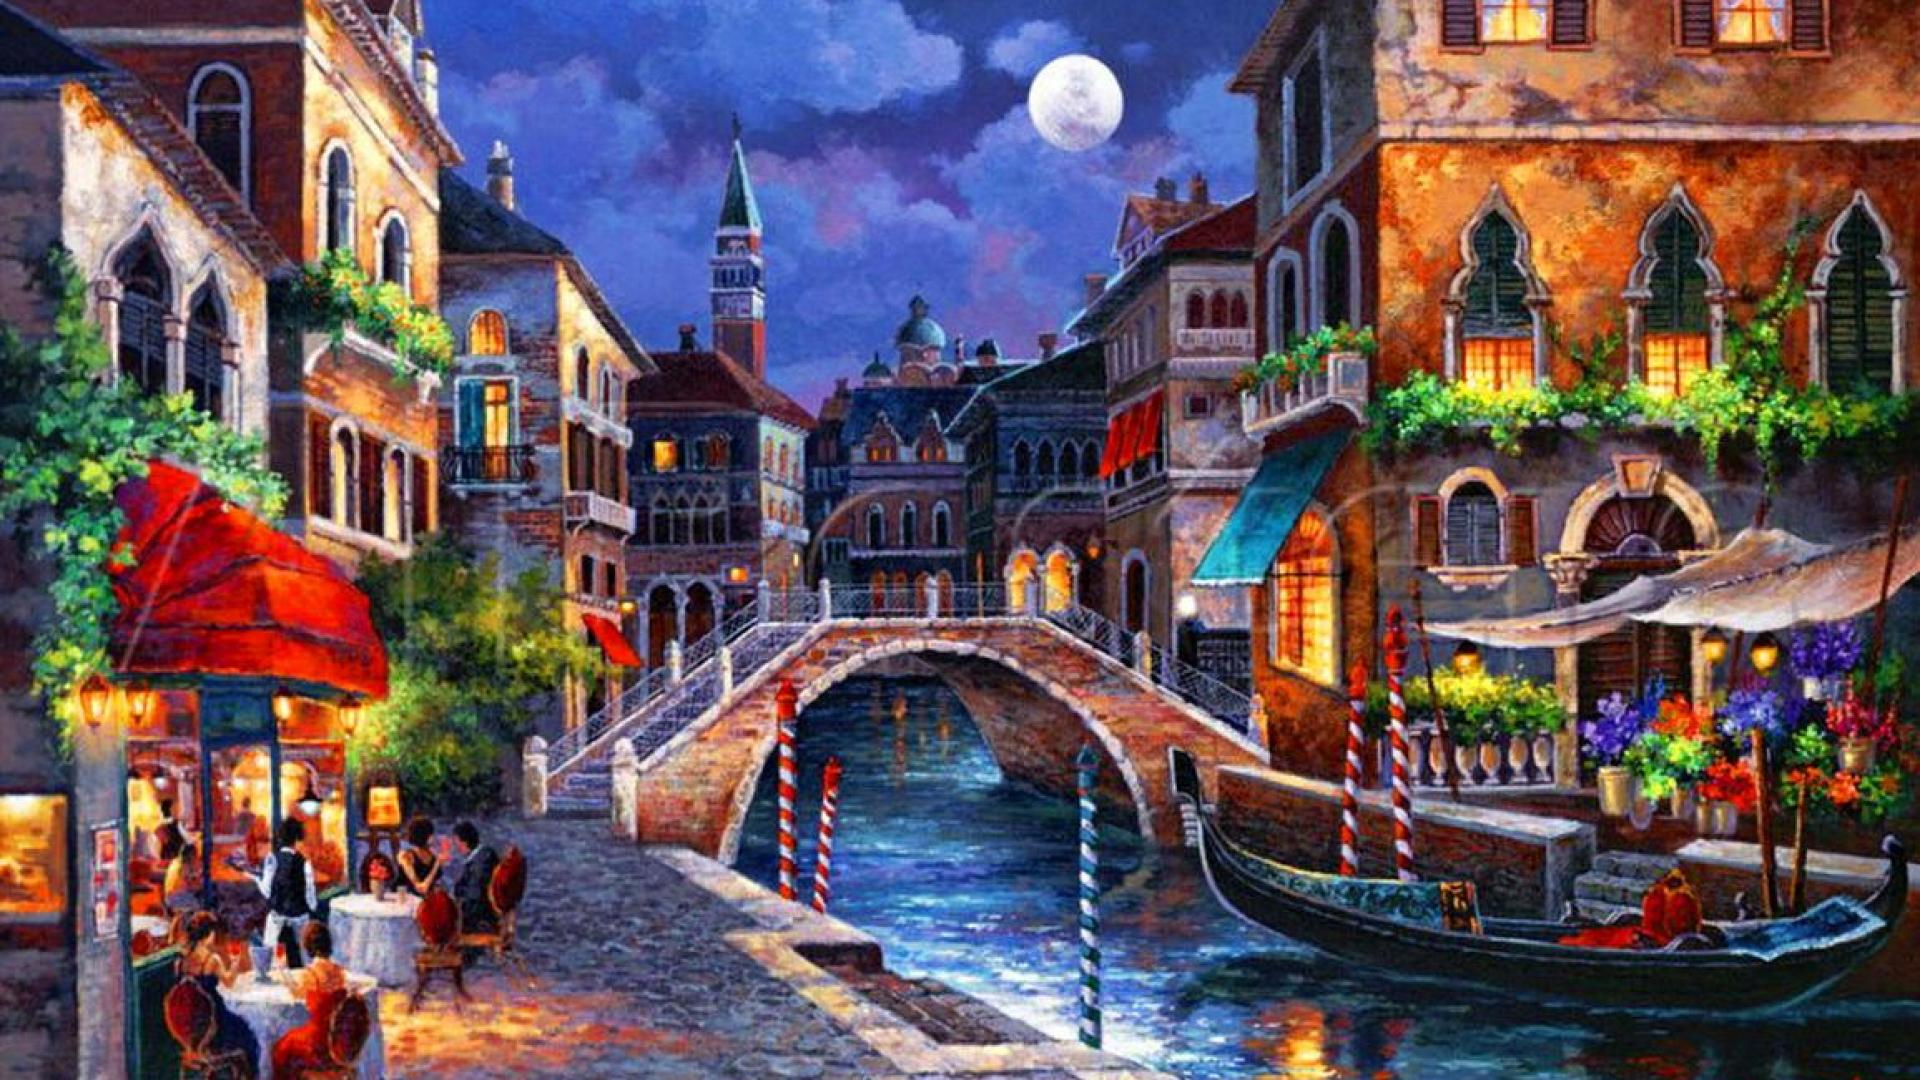 Venice At Night Painting HD Wallpaper Background Images 1920x1080